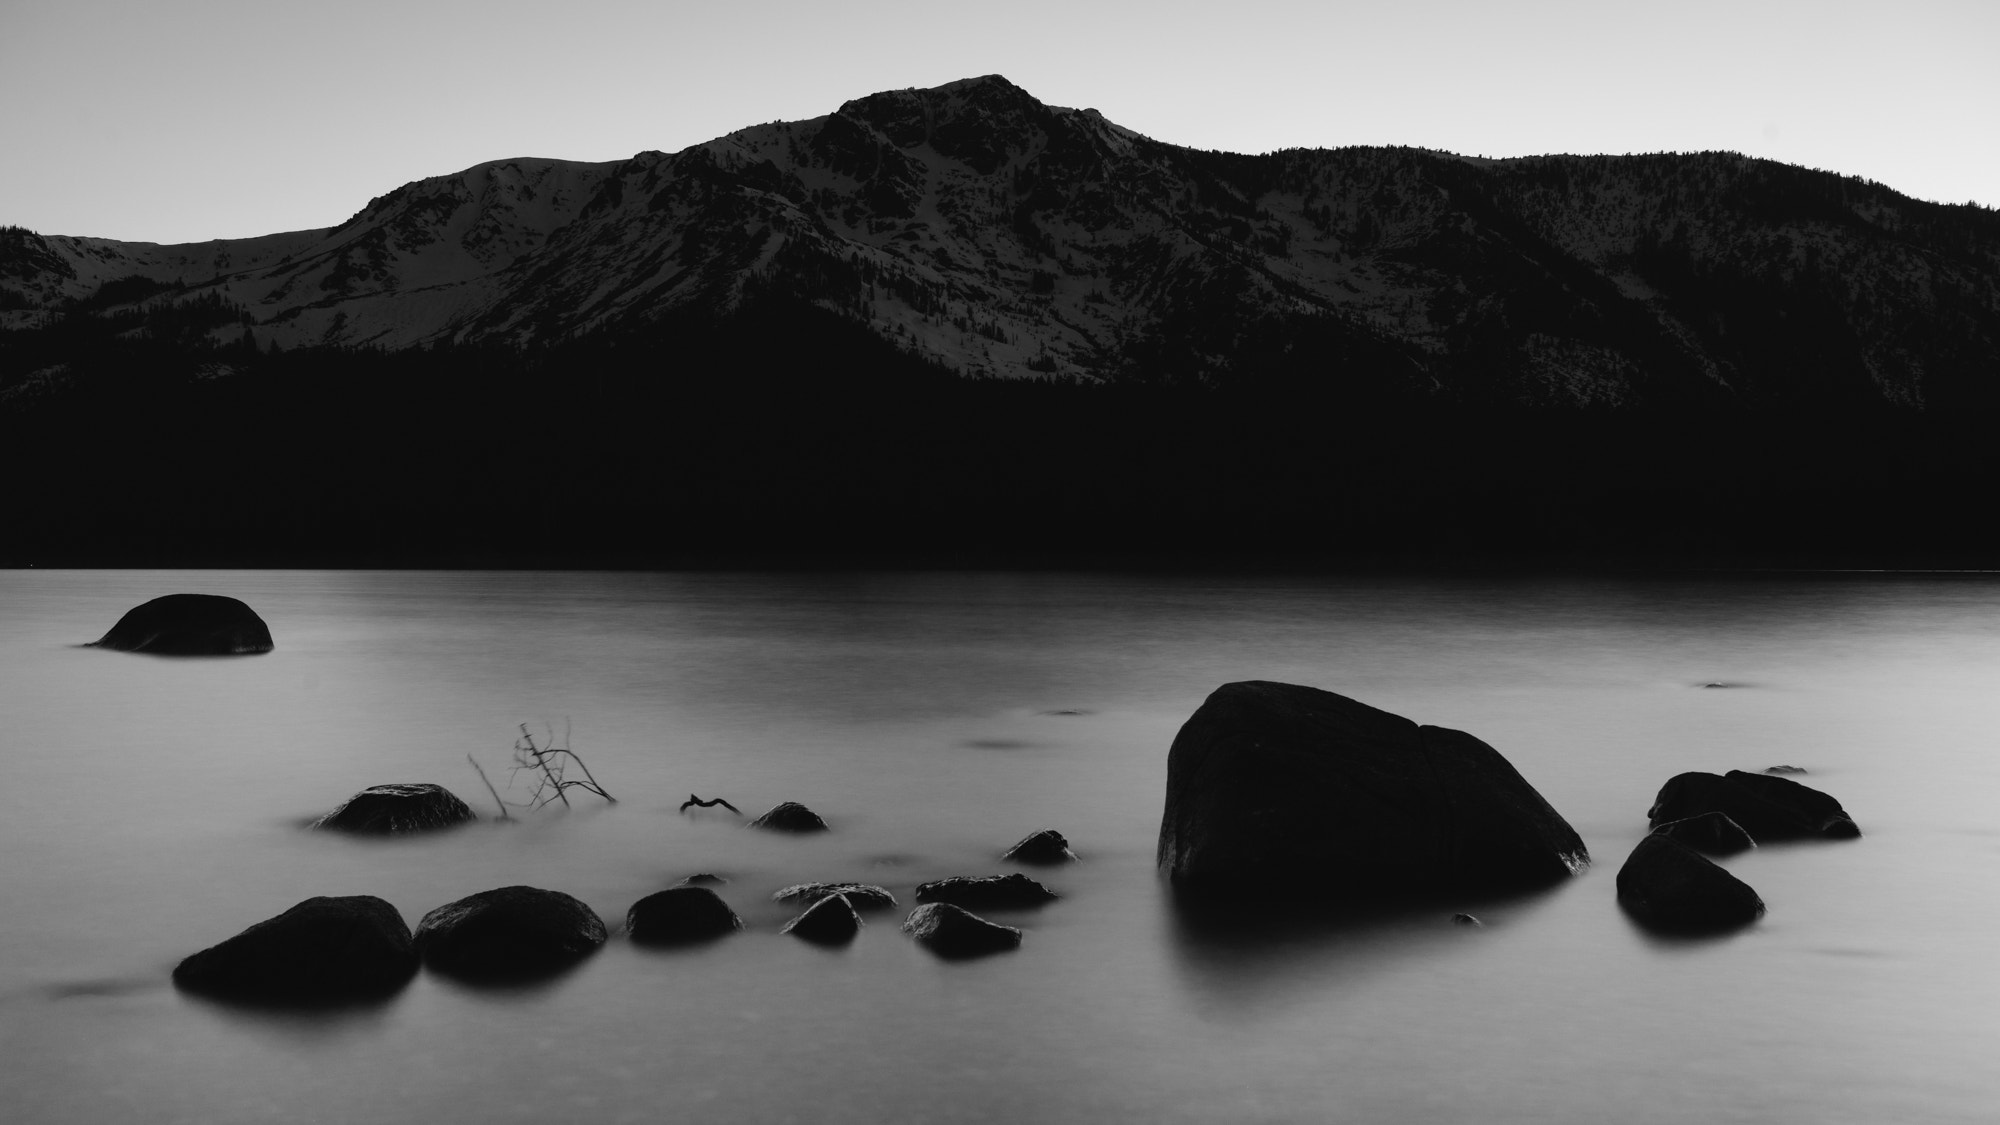 Photograph Mt. Tallac in Twillight by Tim Peare on 500px